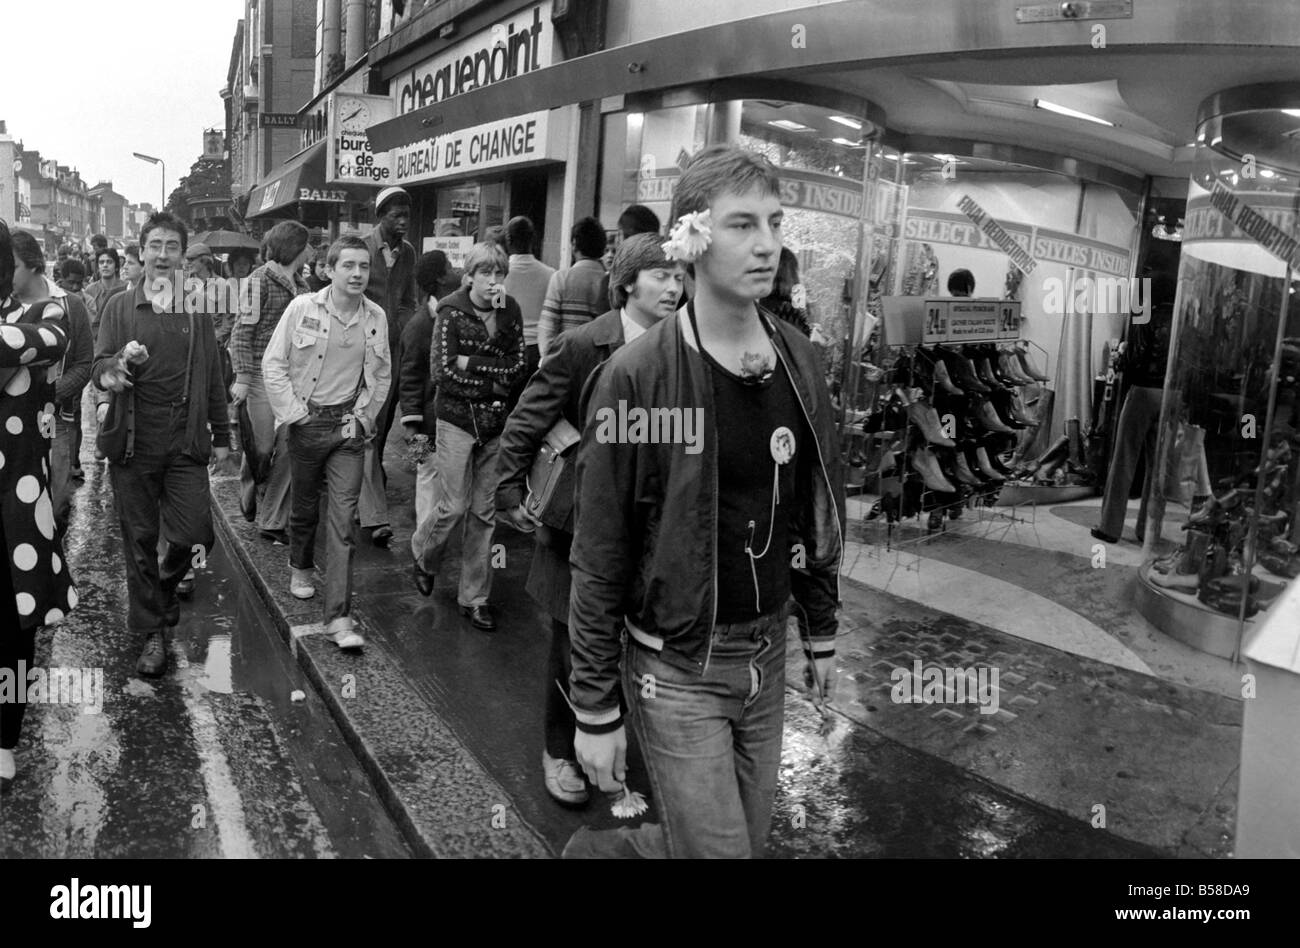 Youth Culture/Music/Police/Street scenes